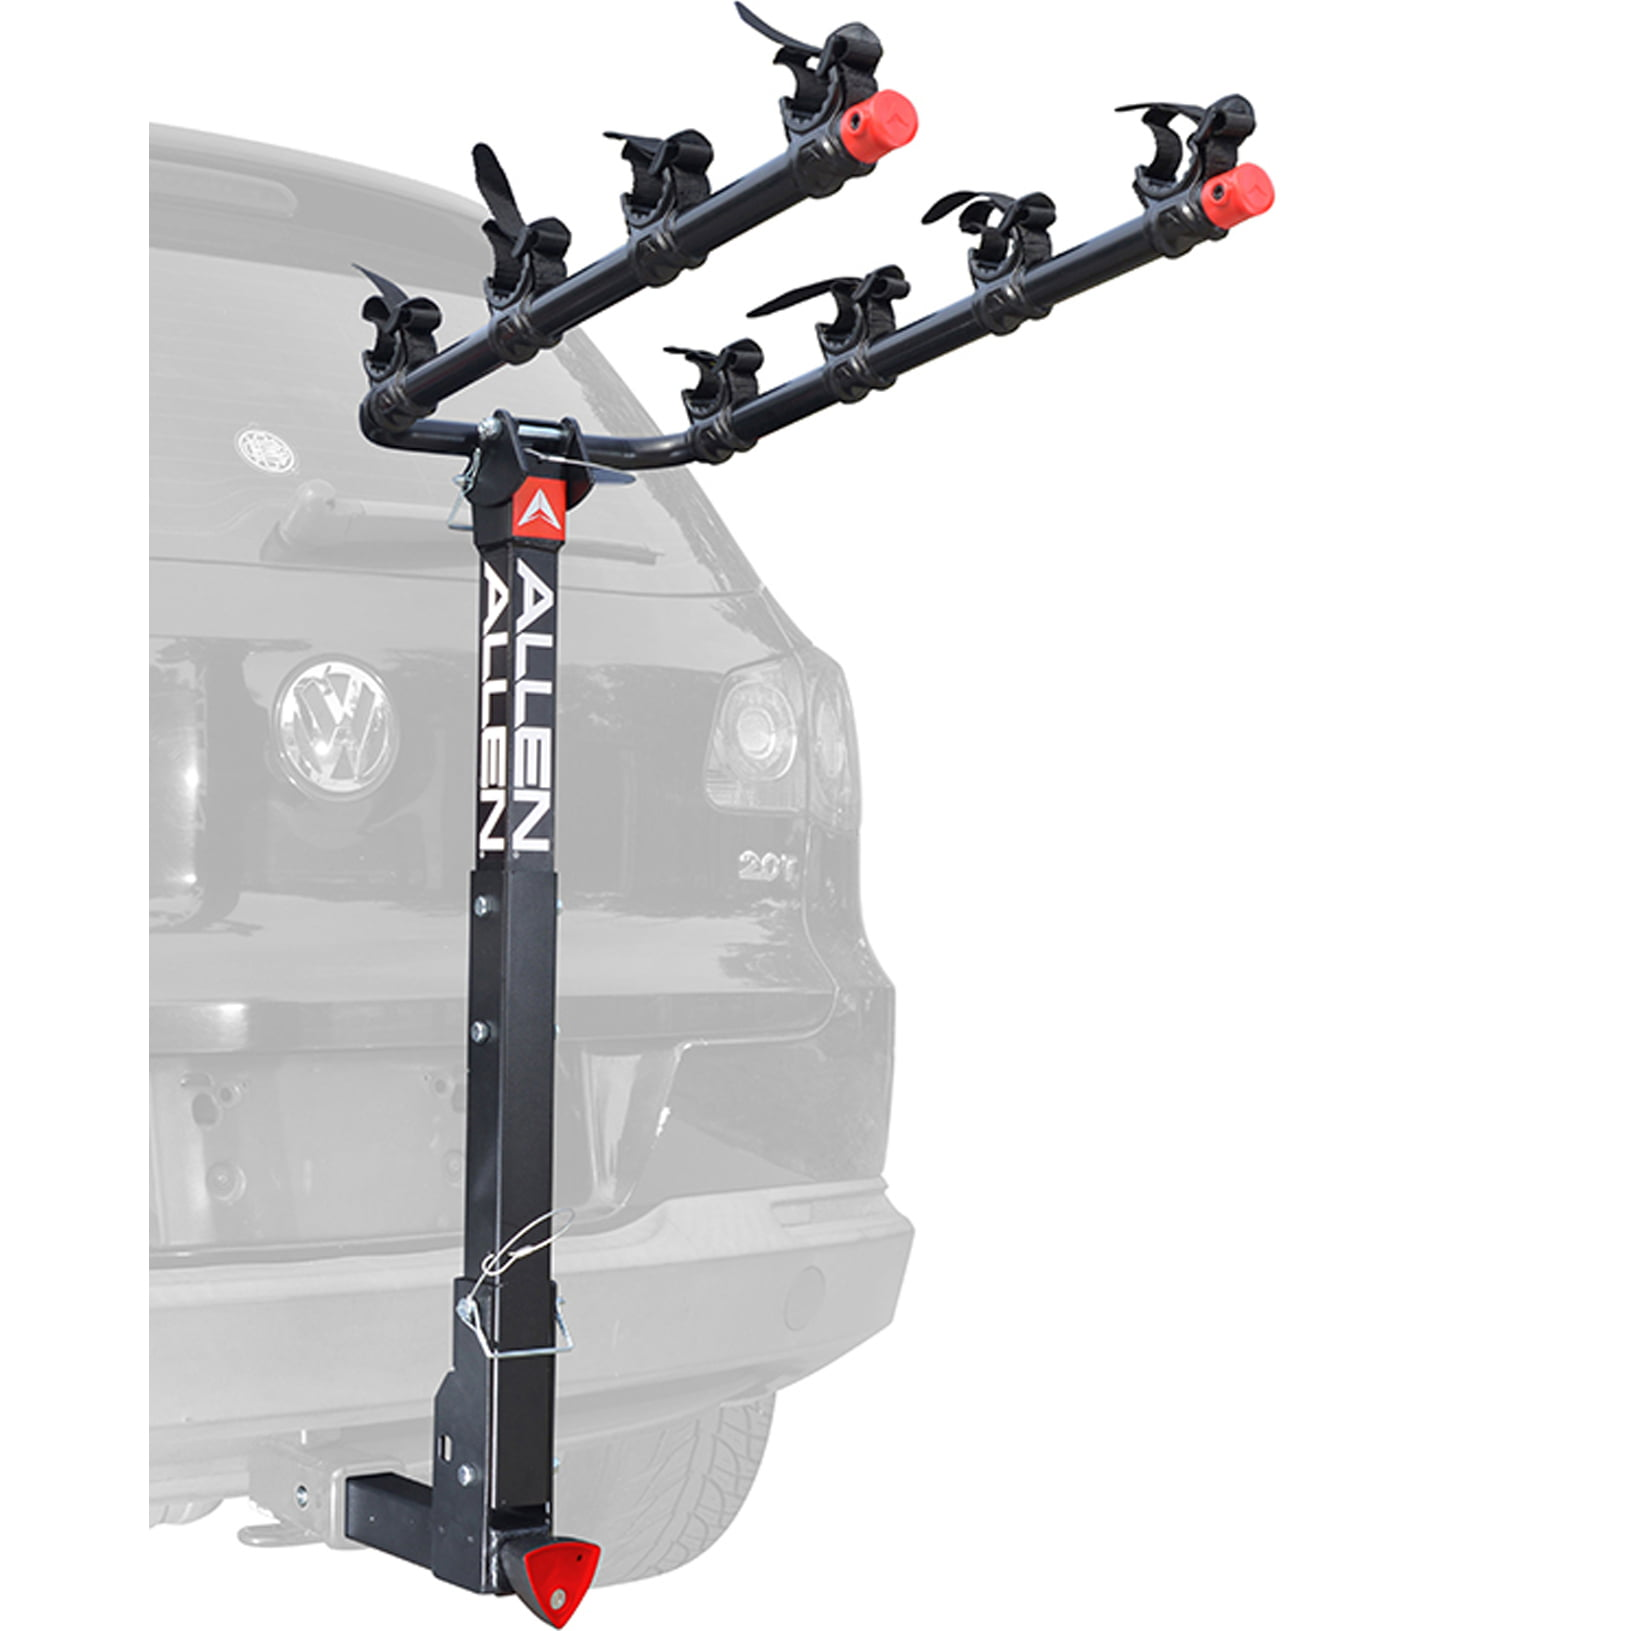 Allen Sports Deluxe Quick Install Locking 4-Bicycle Hitch Mounted Bike Rack Carrier, 542QR by THE R A ALLEN COMPANY INC